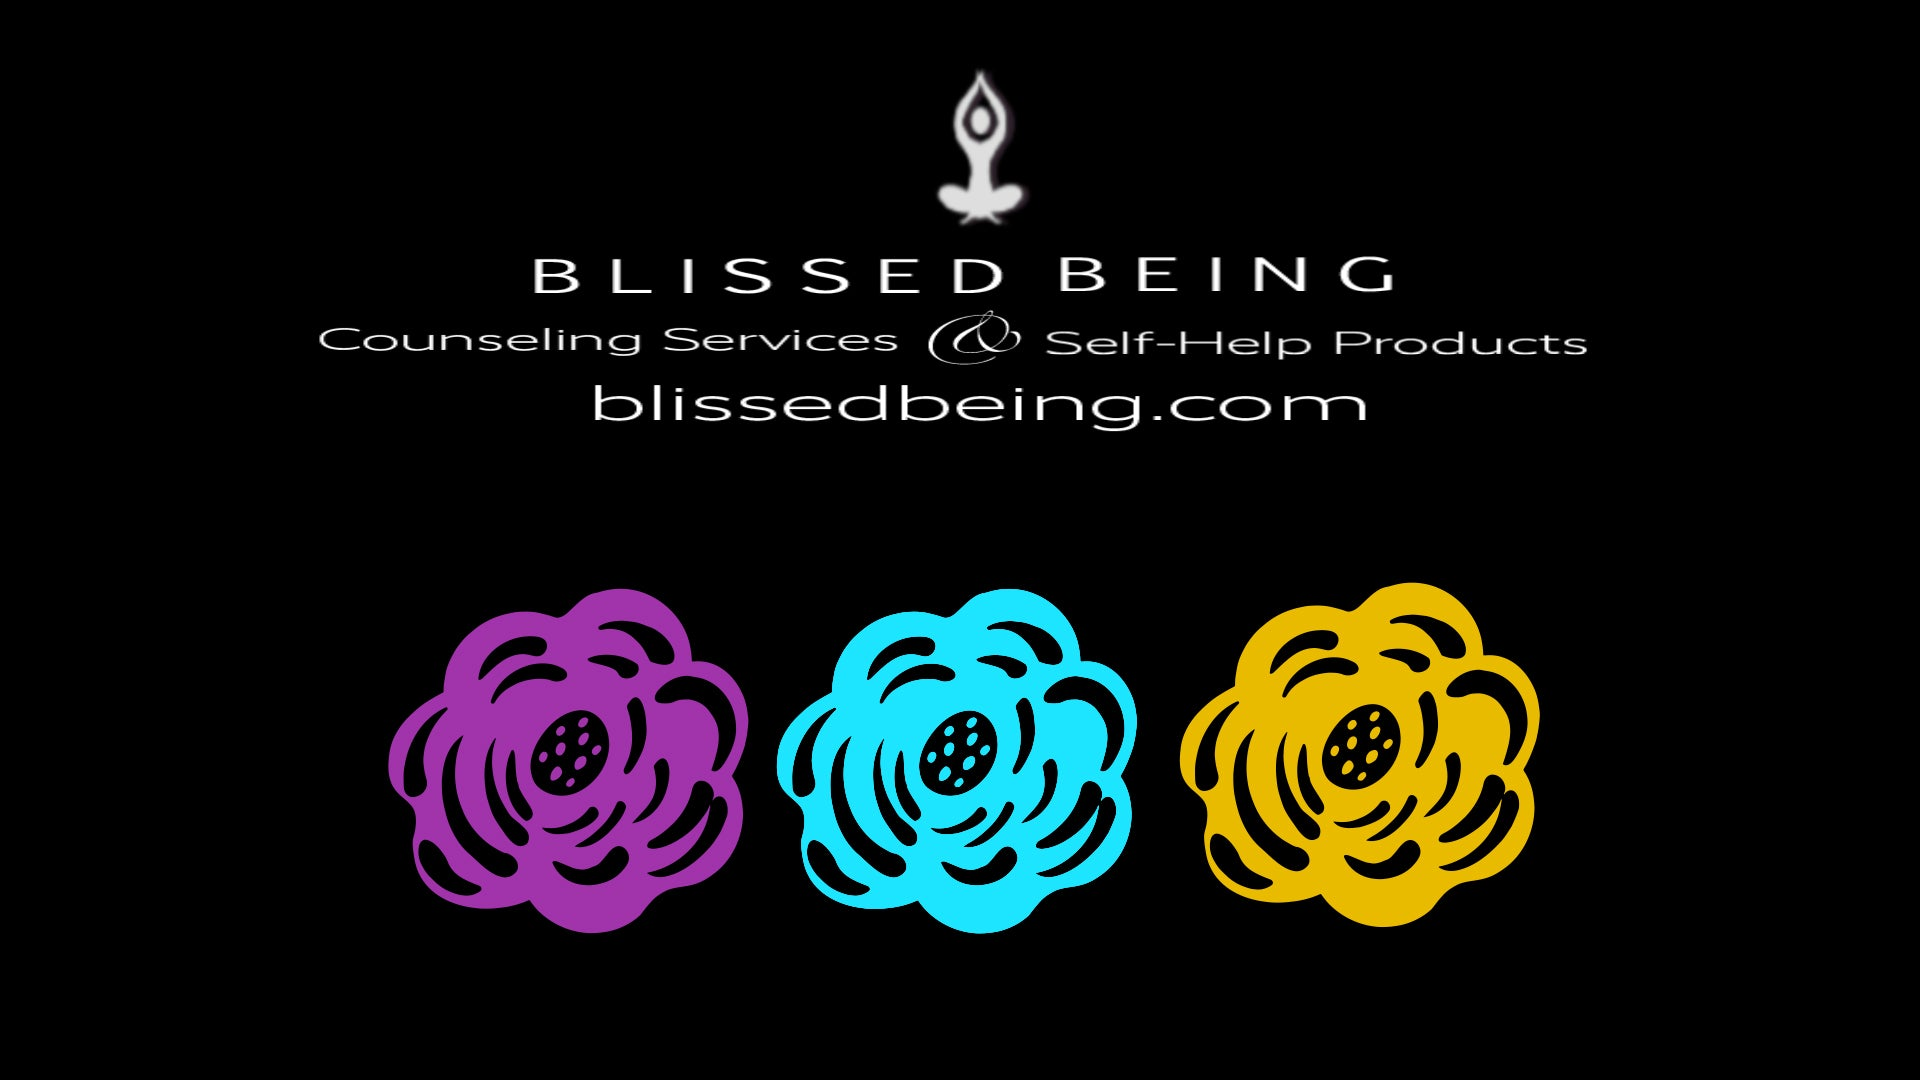 BLISSEDBEING.COM